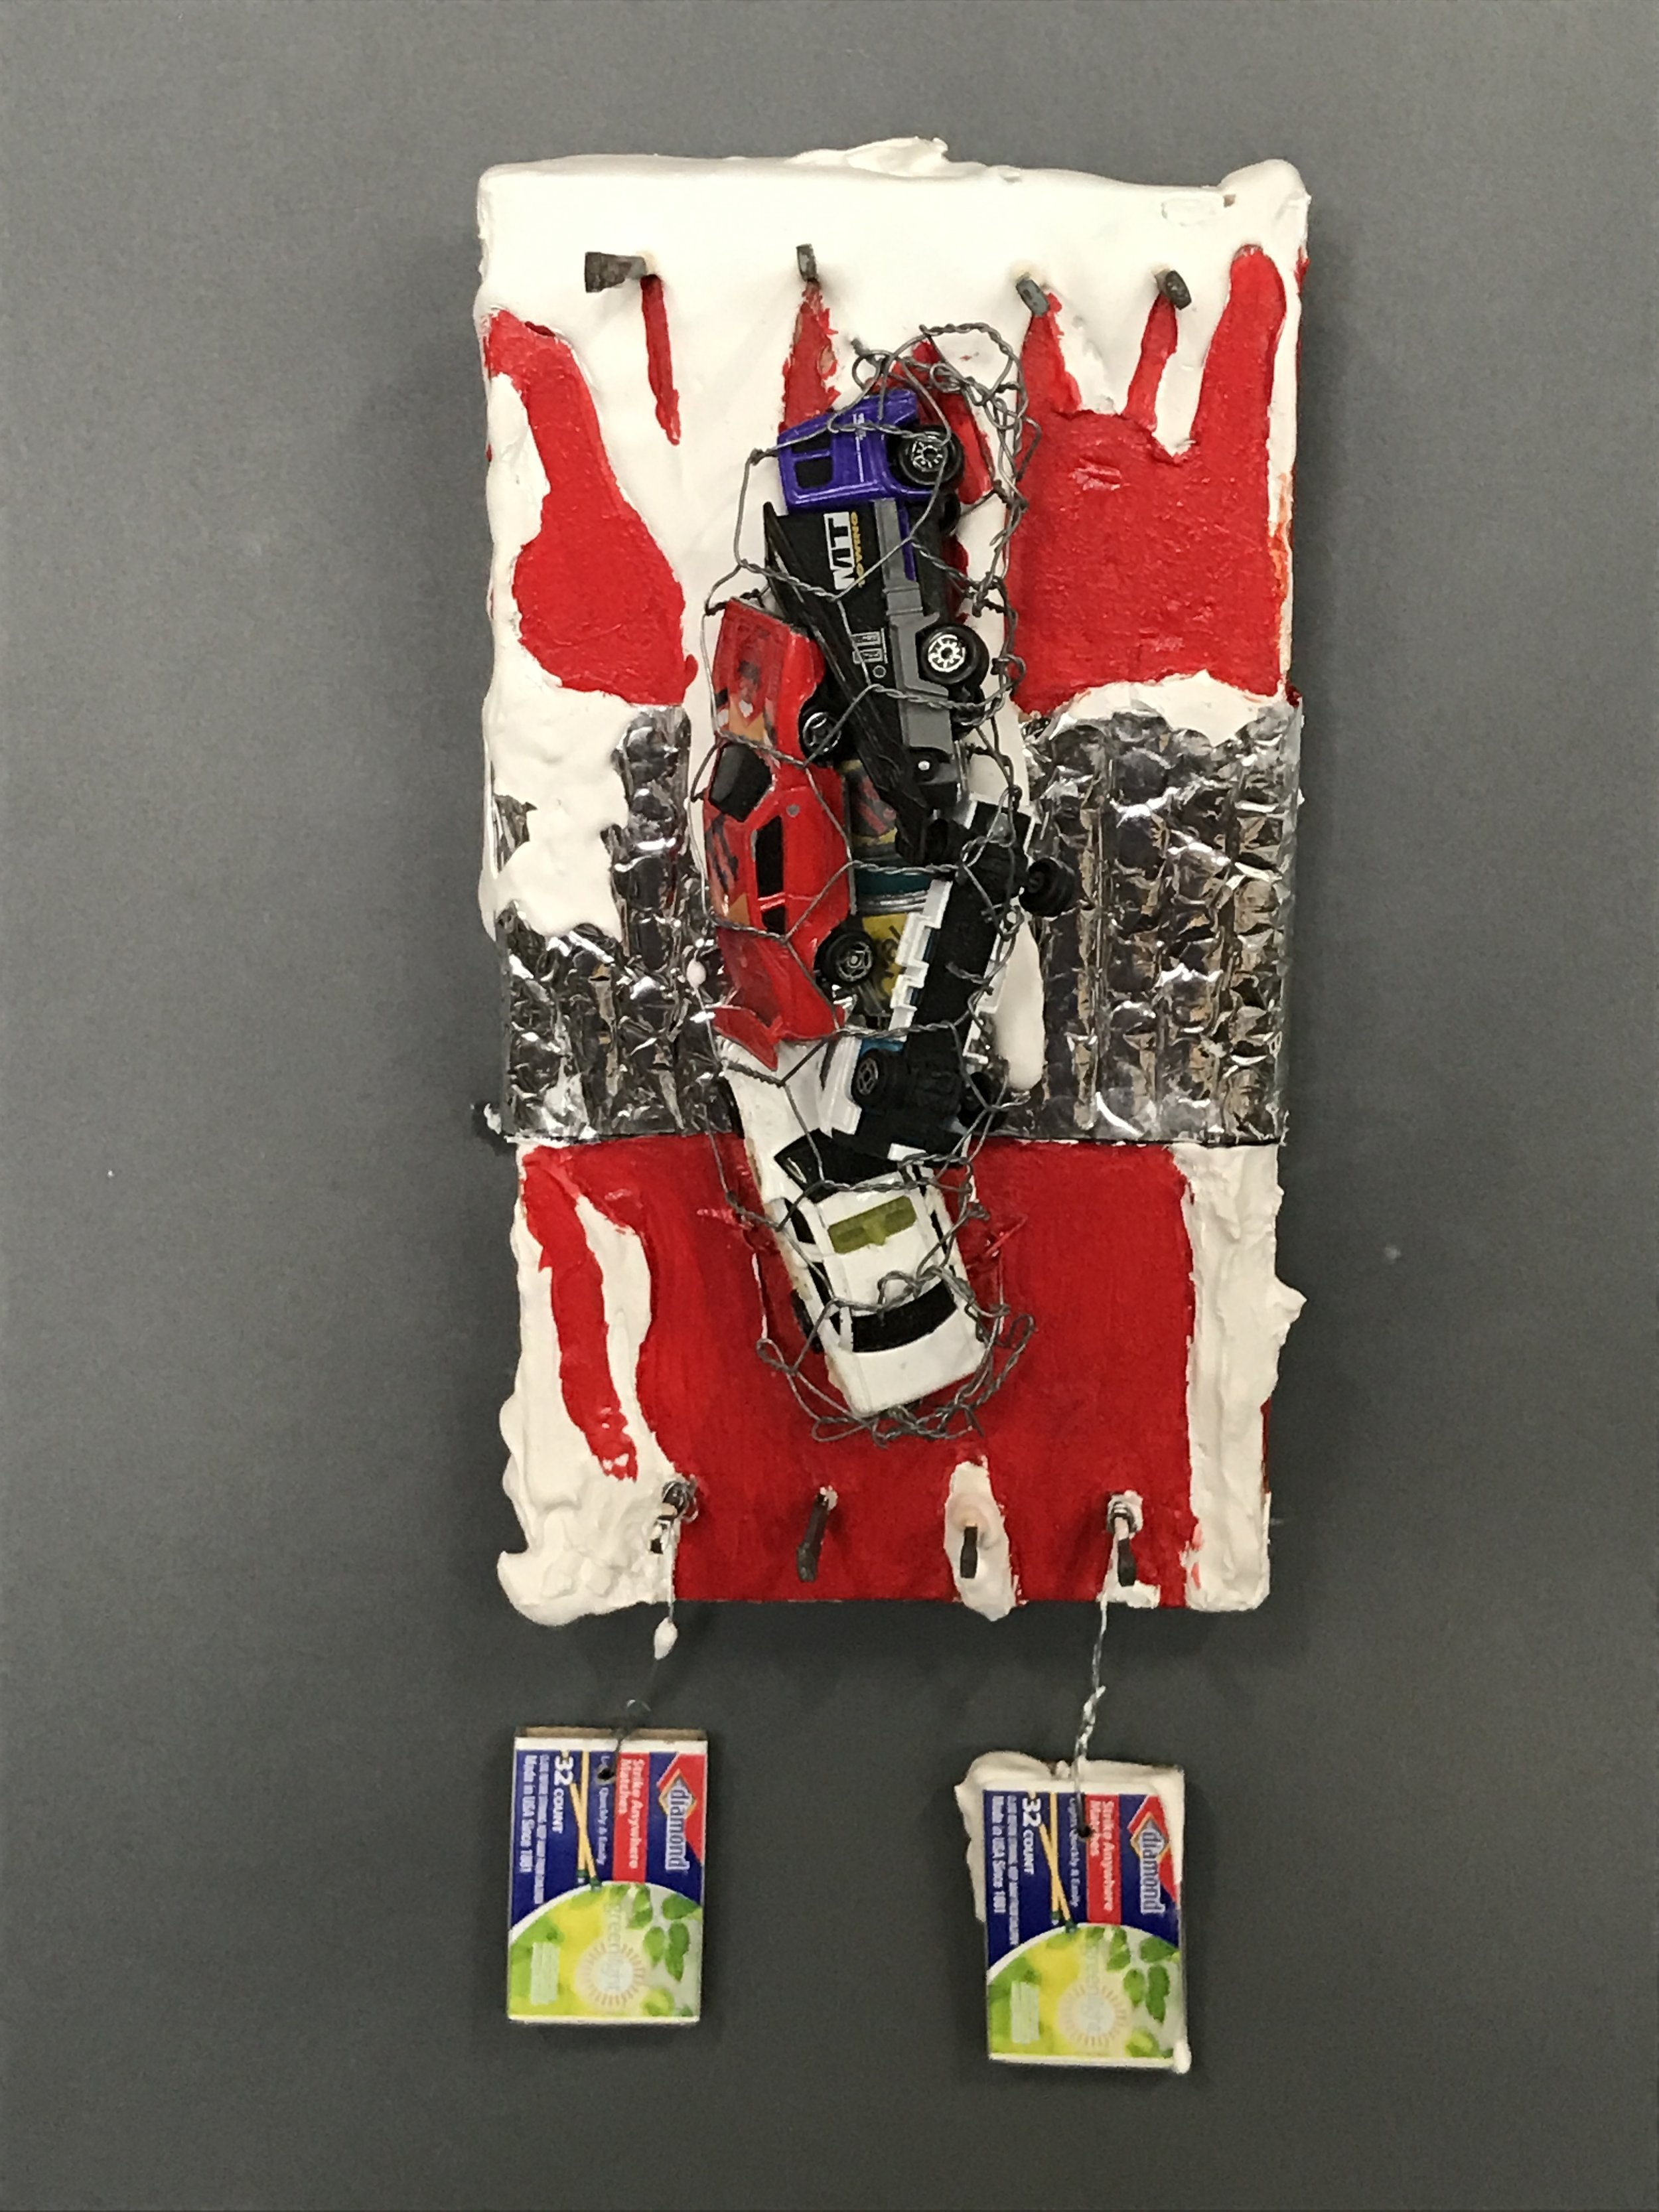 Match Anyone?  Mixed media 13.25 x 5.5 in. / 33.6 x 13.9 cm.